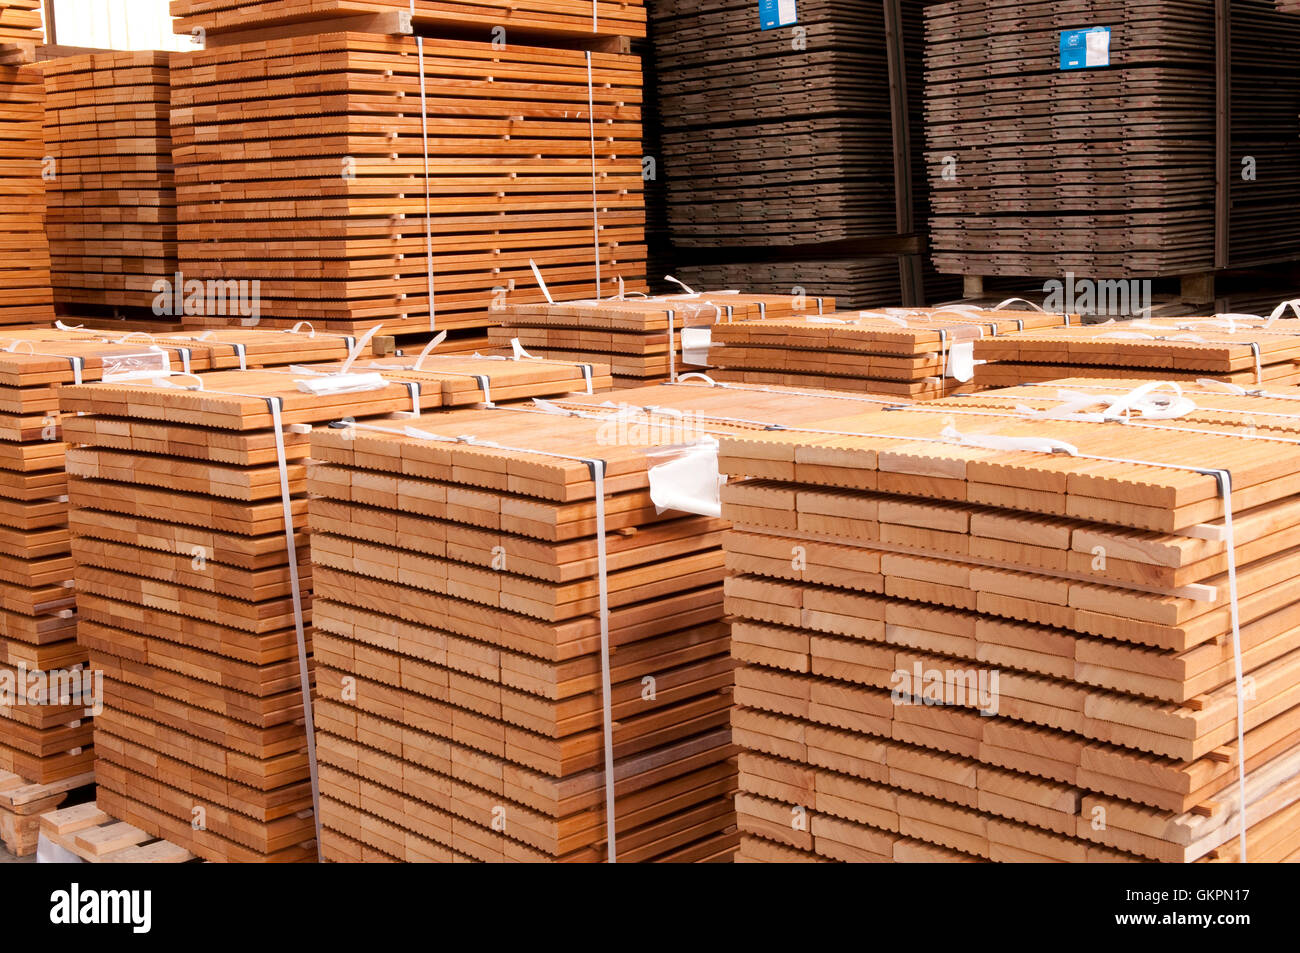 Hard wooden planks stored in a sawmill depot - Stock Image